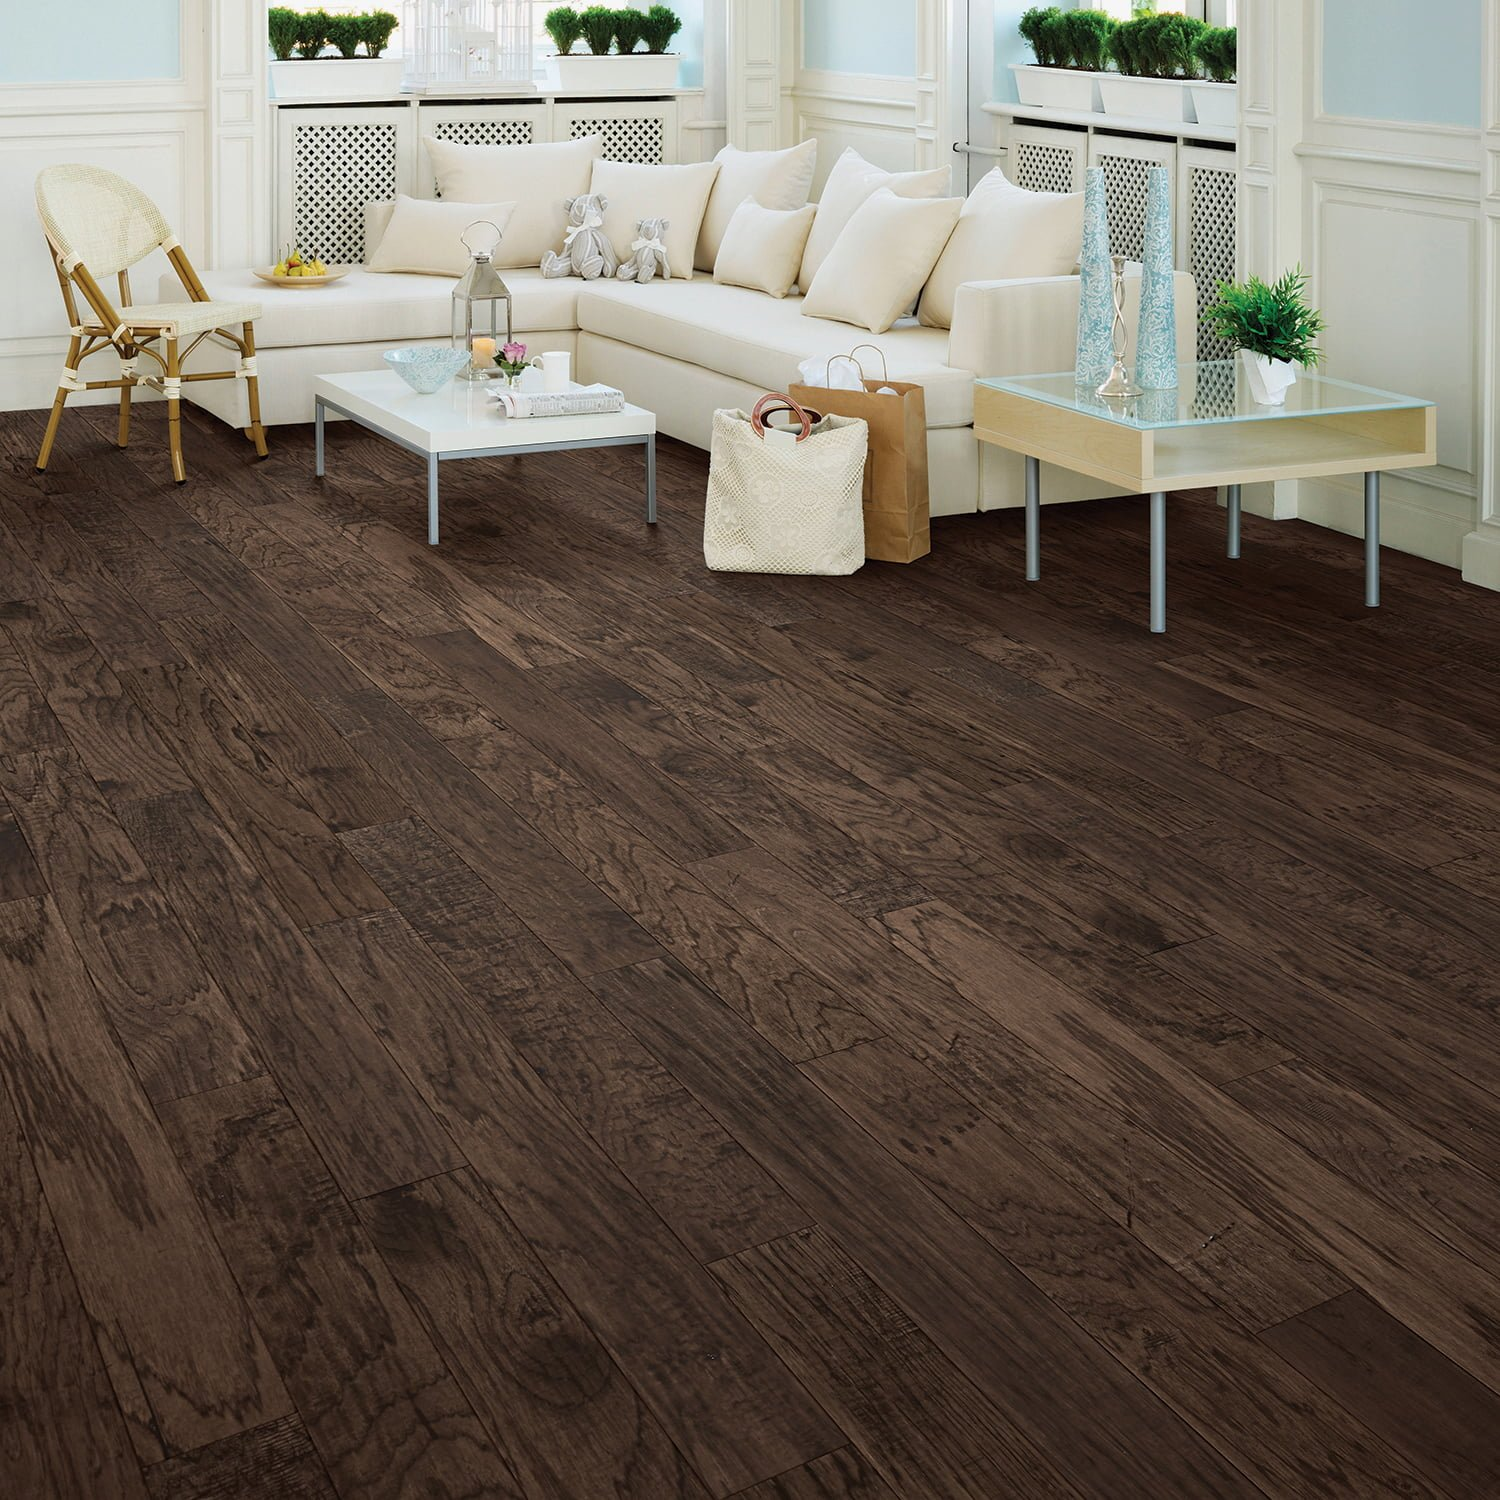 Kraus Flooring Halton Hickory Collection Heather Hickory